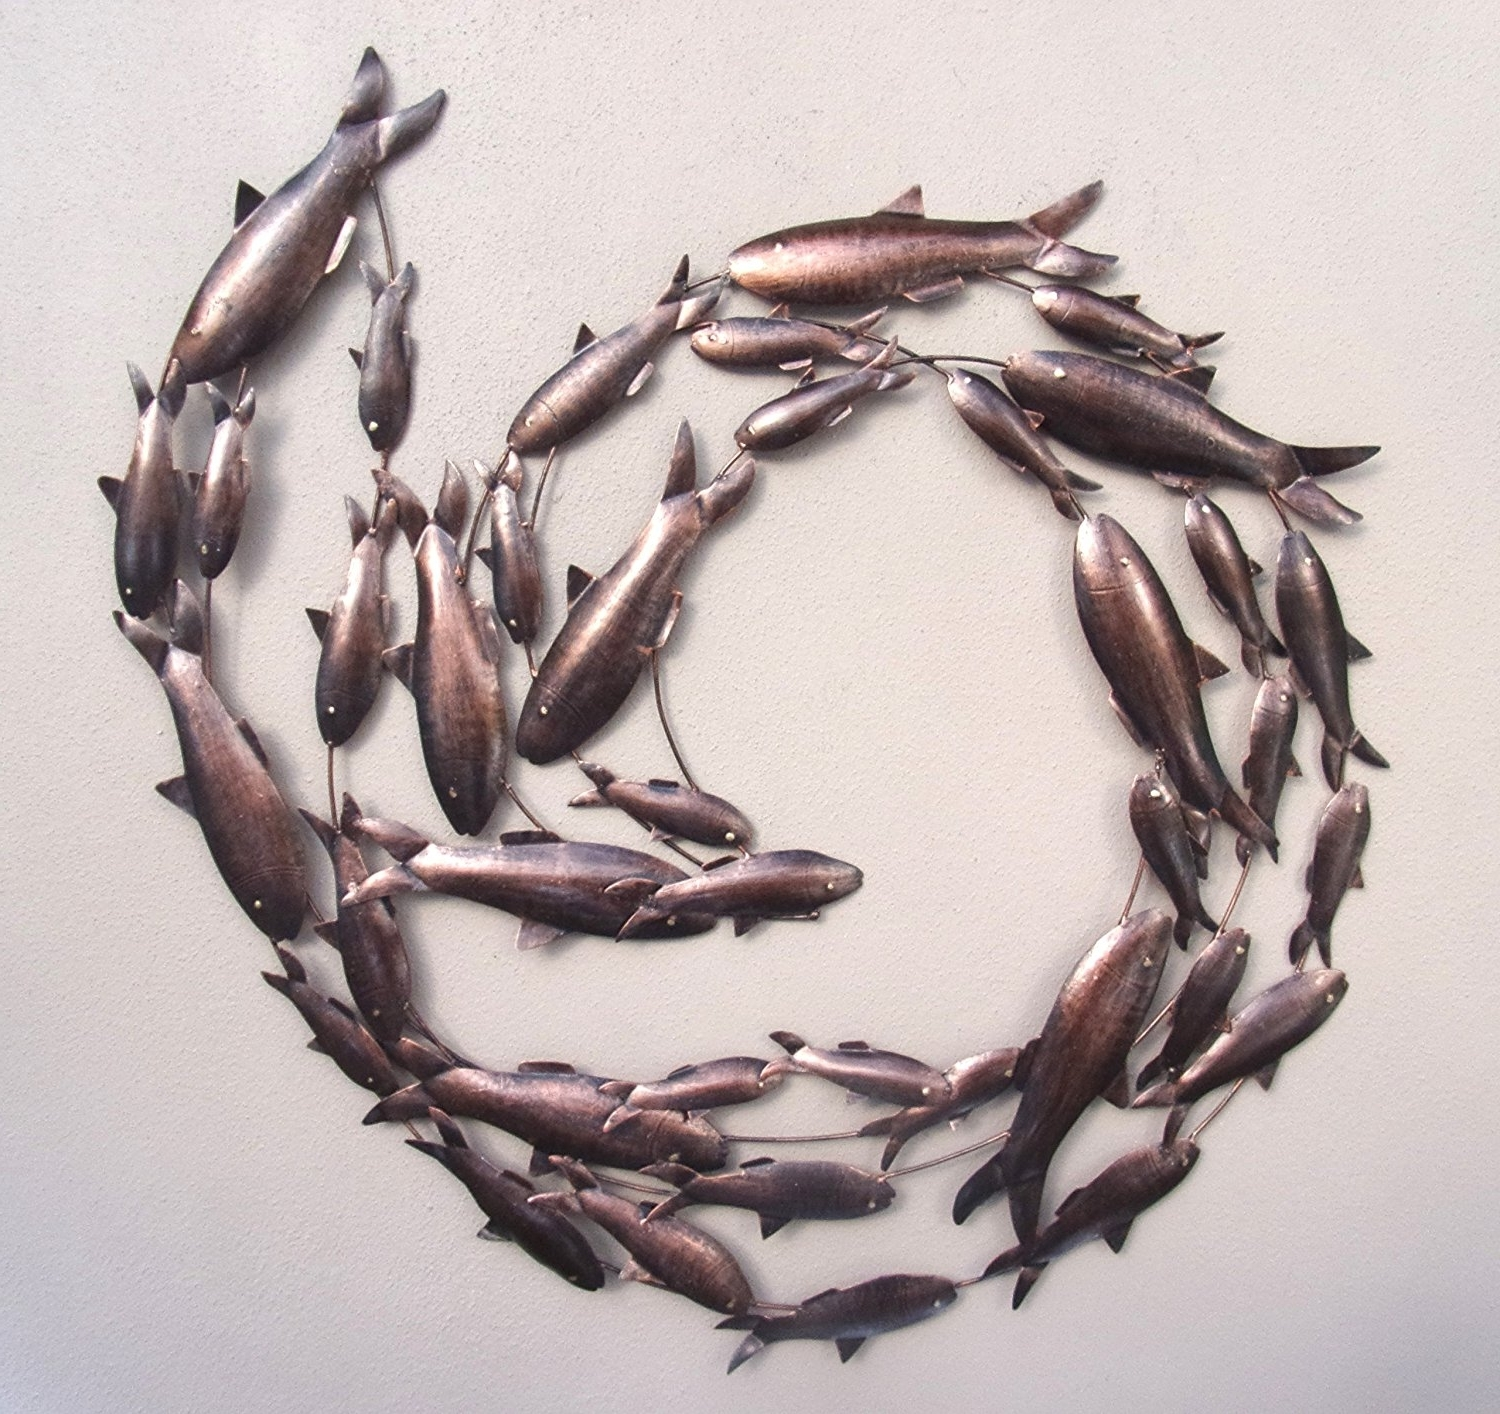 Contemporary Copper Fish Shoal 3D Metal Wall Art – Hand Made Intended For Famous Shoal Of Fish Metal Wall Art (View 2 of 15)